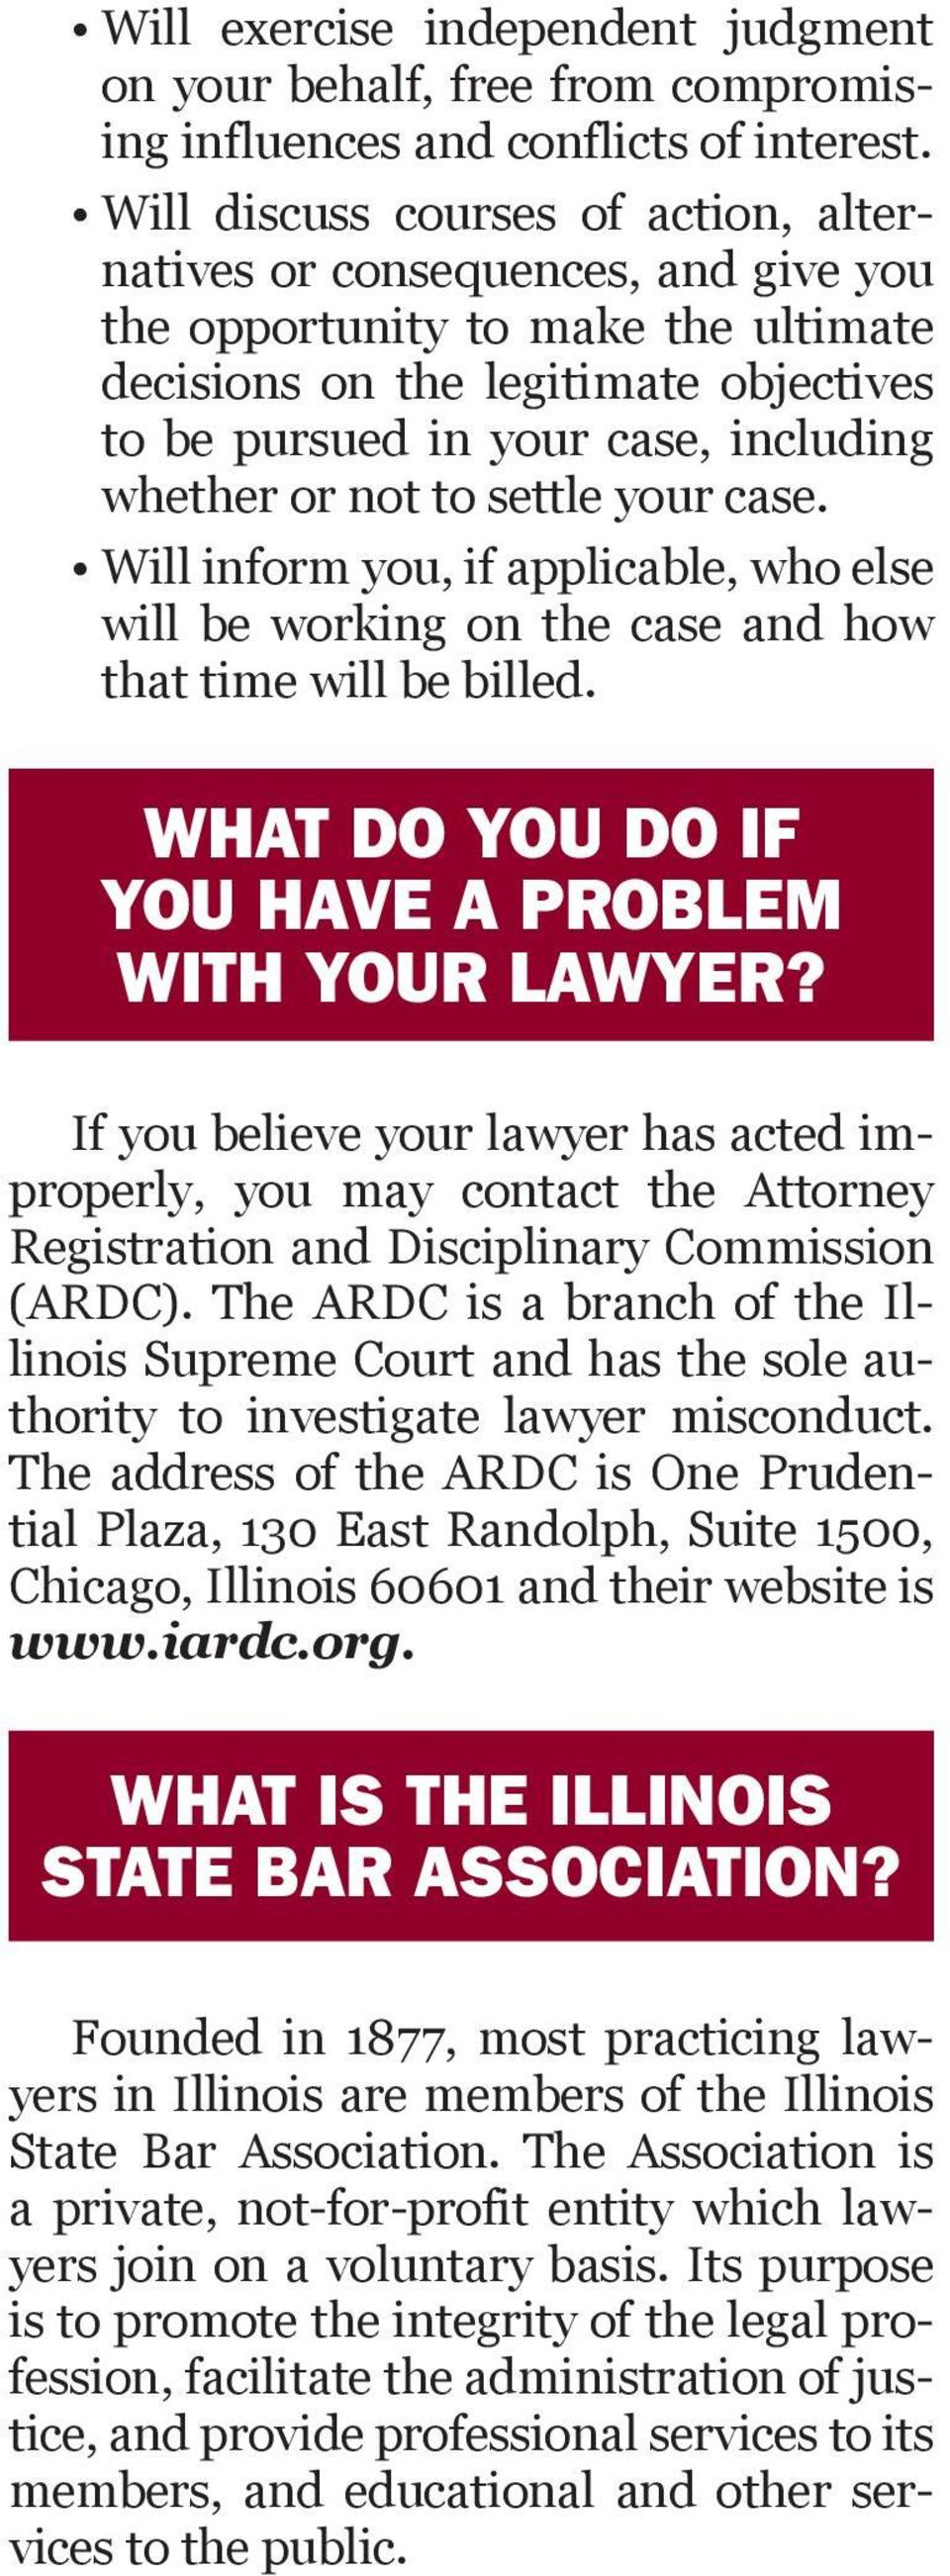 not to settle your case. Will inform you, if applicable, who else will be working on the case and how that time will be billed. What do you do if you have a problem with your lawyer?